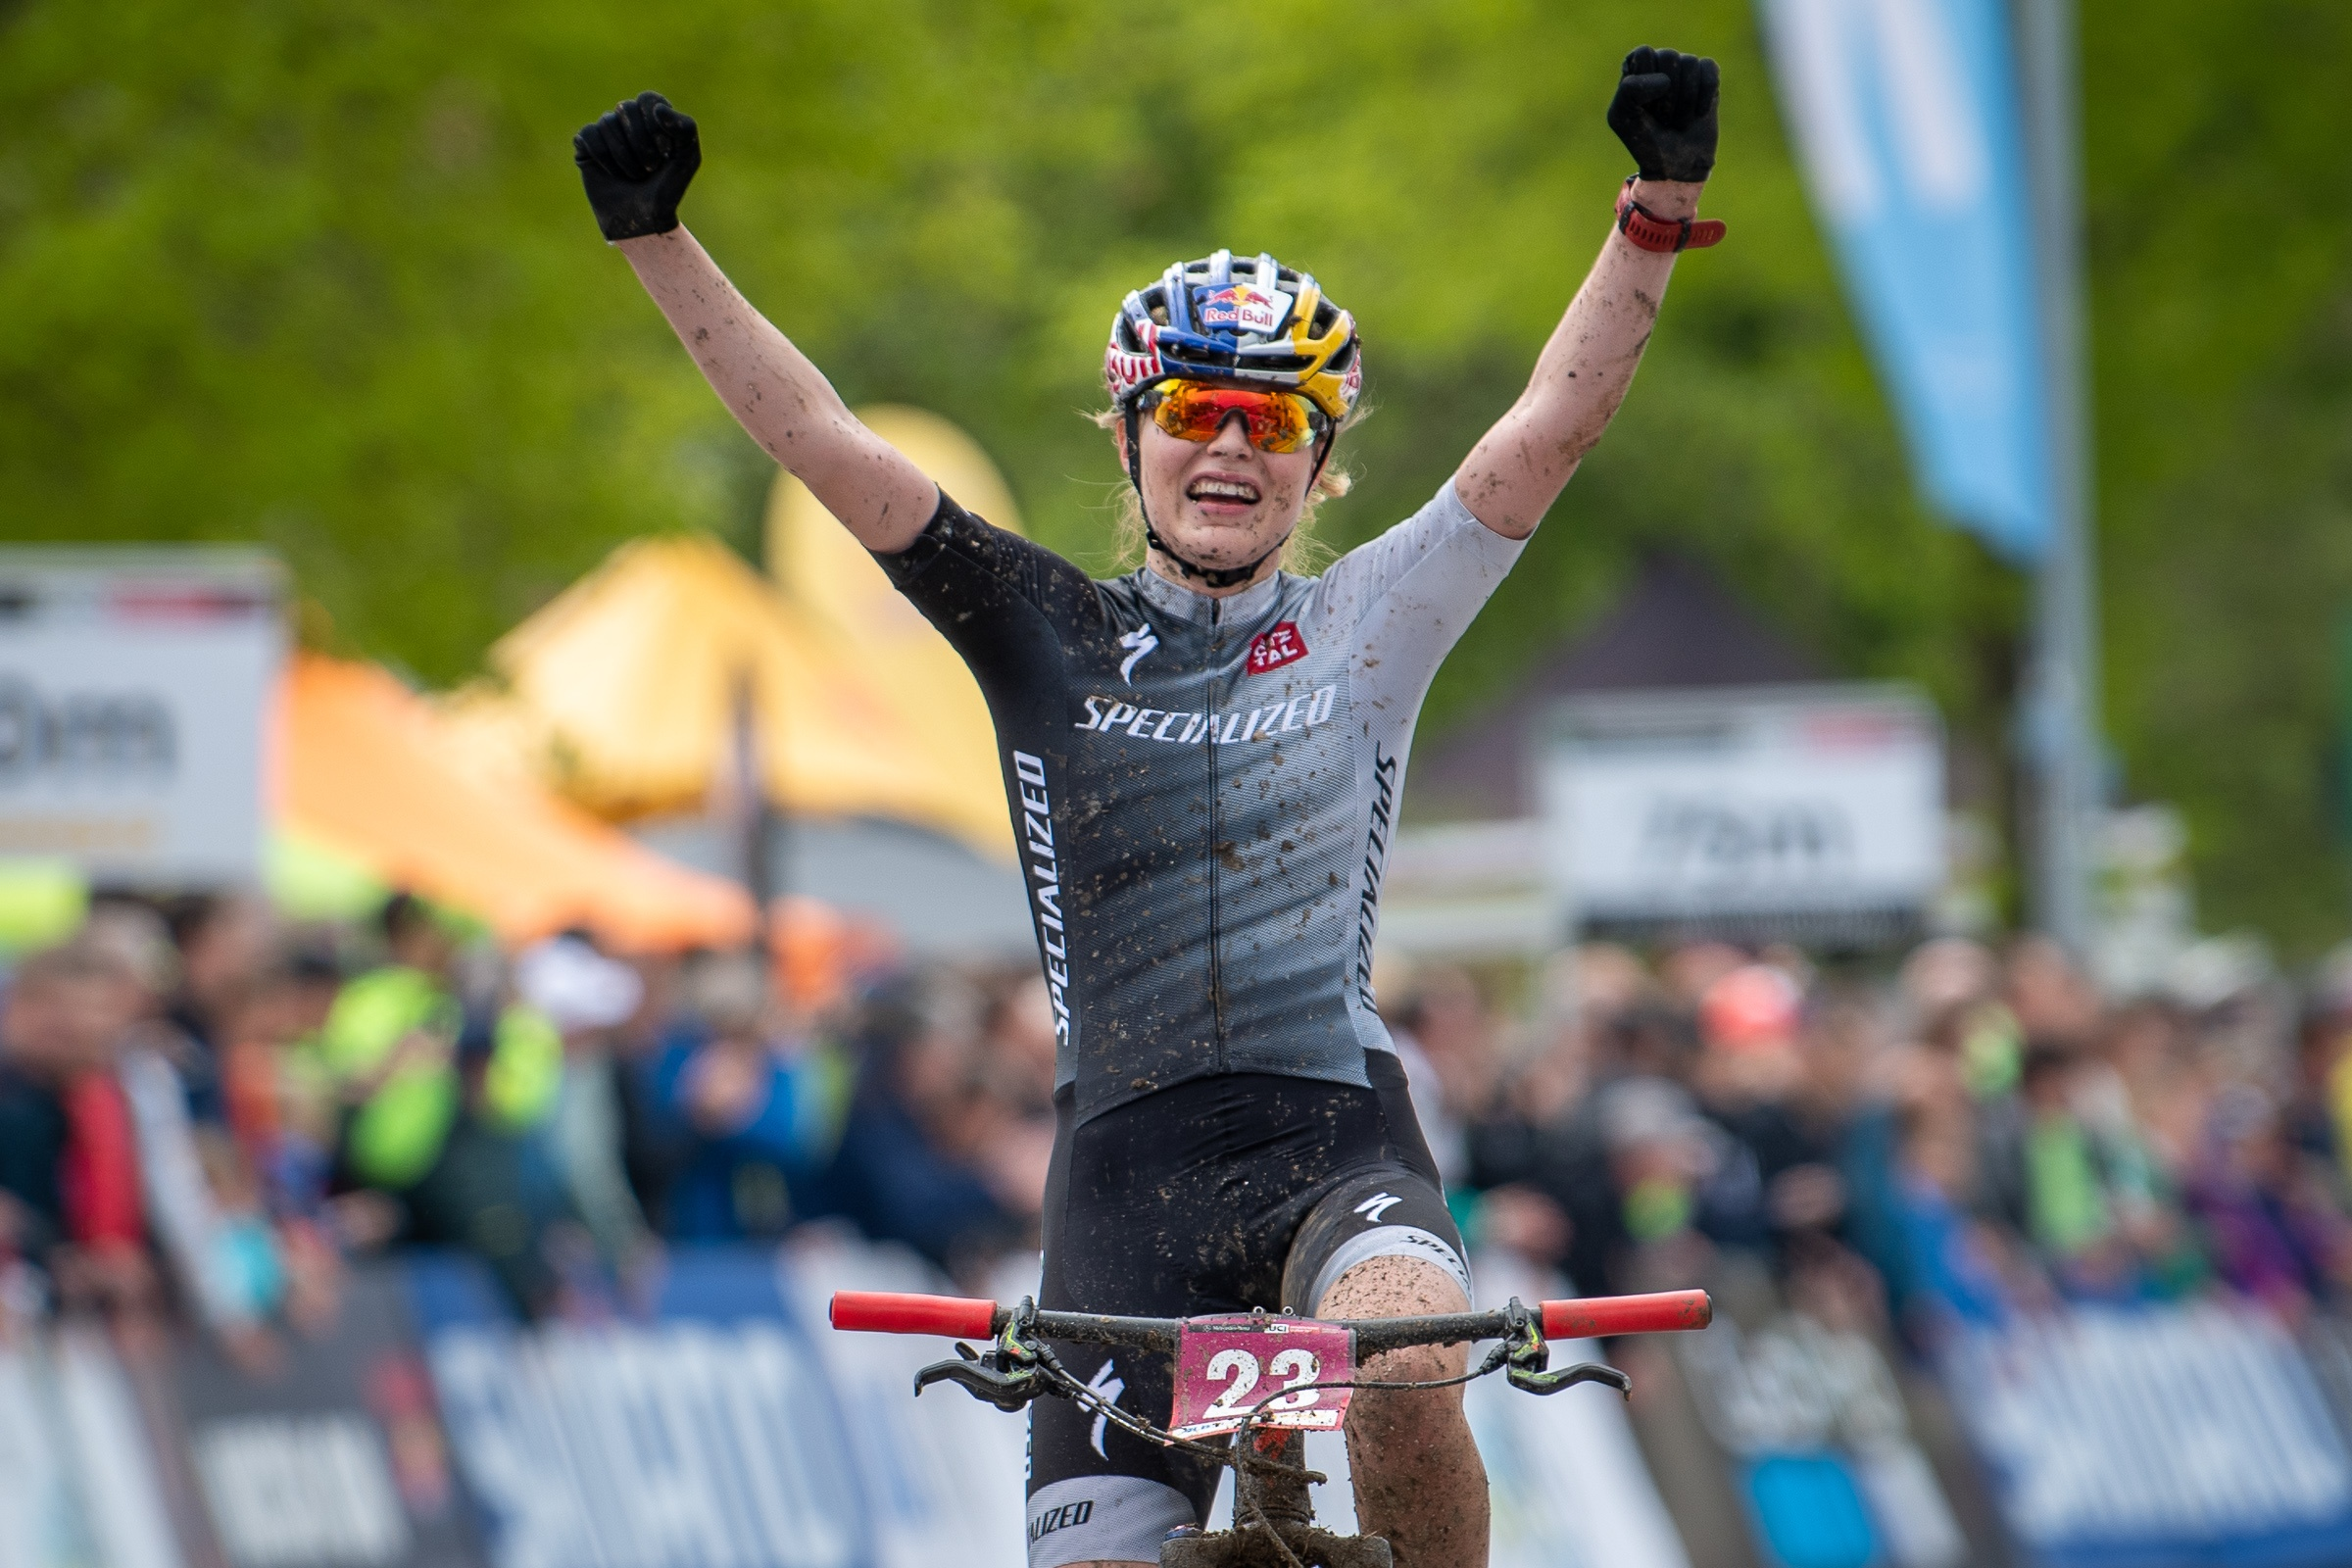 UCI MTB WORLD CUP IN ALBSTADT